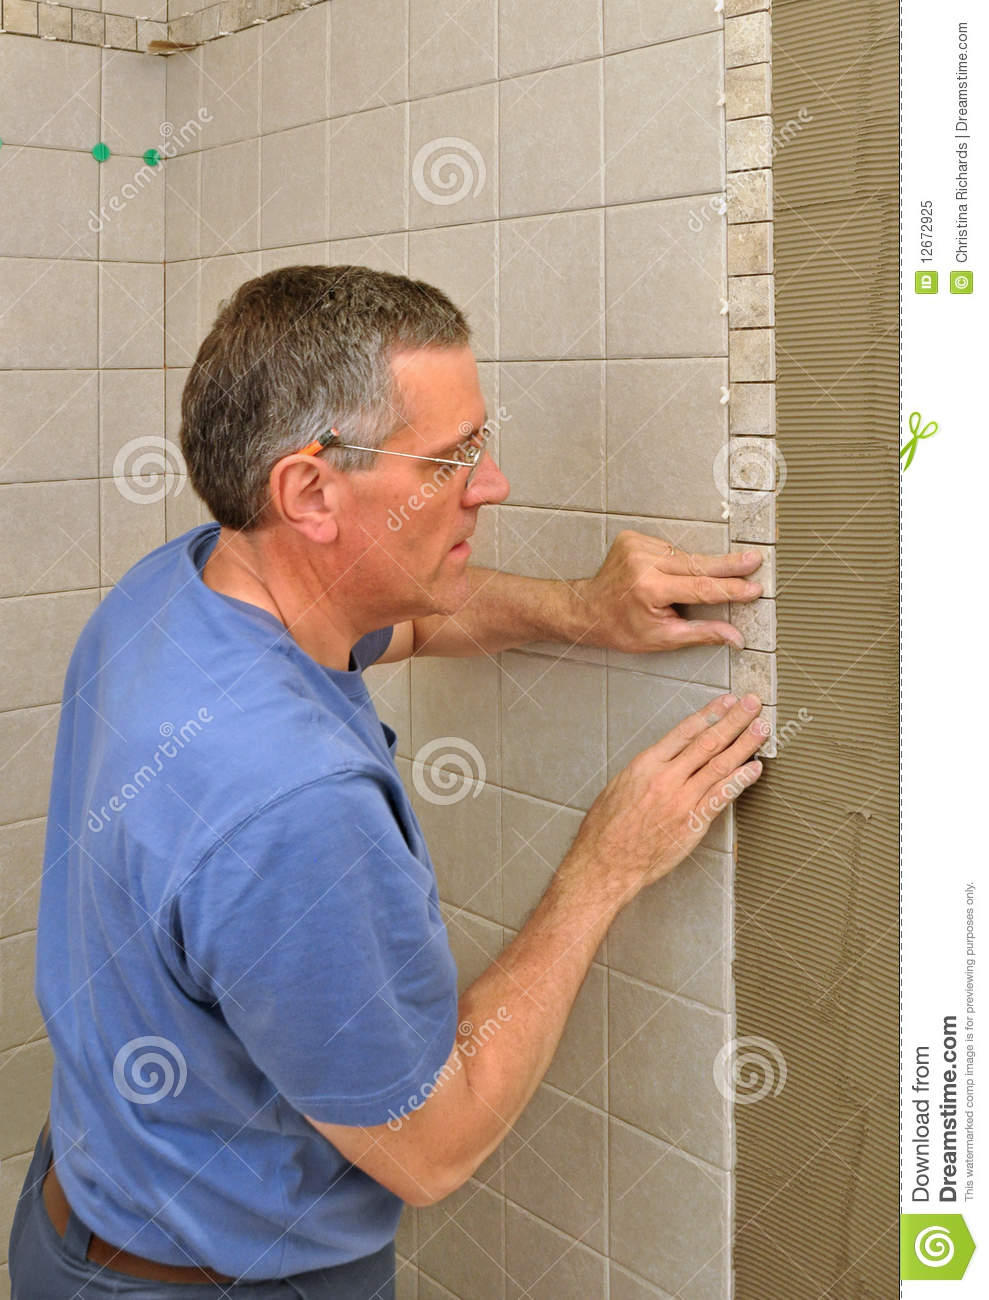 Man Installing Ceramic Tile Border Royalty Free Stock Photo Image 12672925